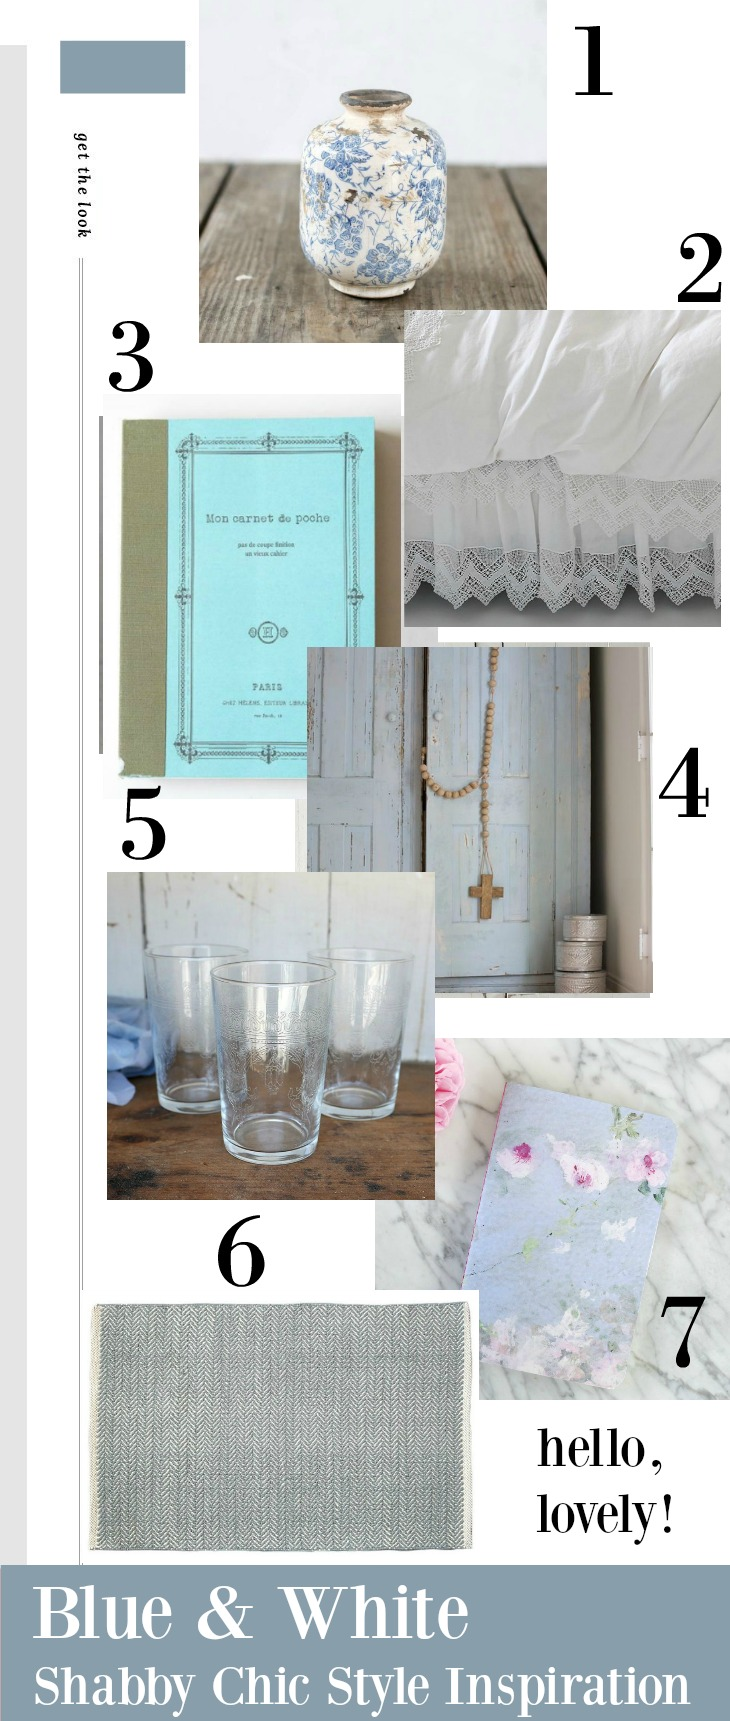 Blue and white shabby chic decor and inspiration on Hello Lovely Studio.